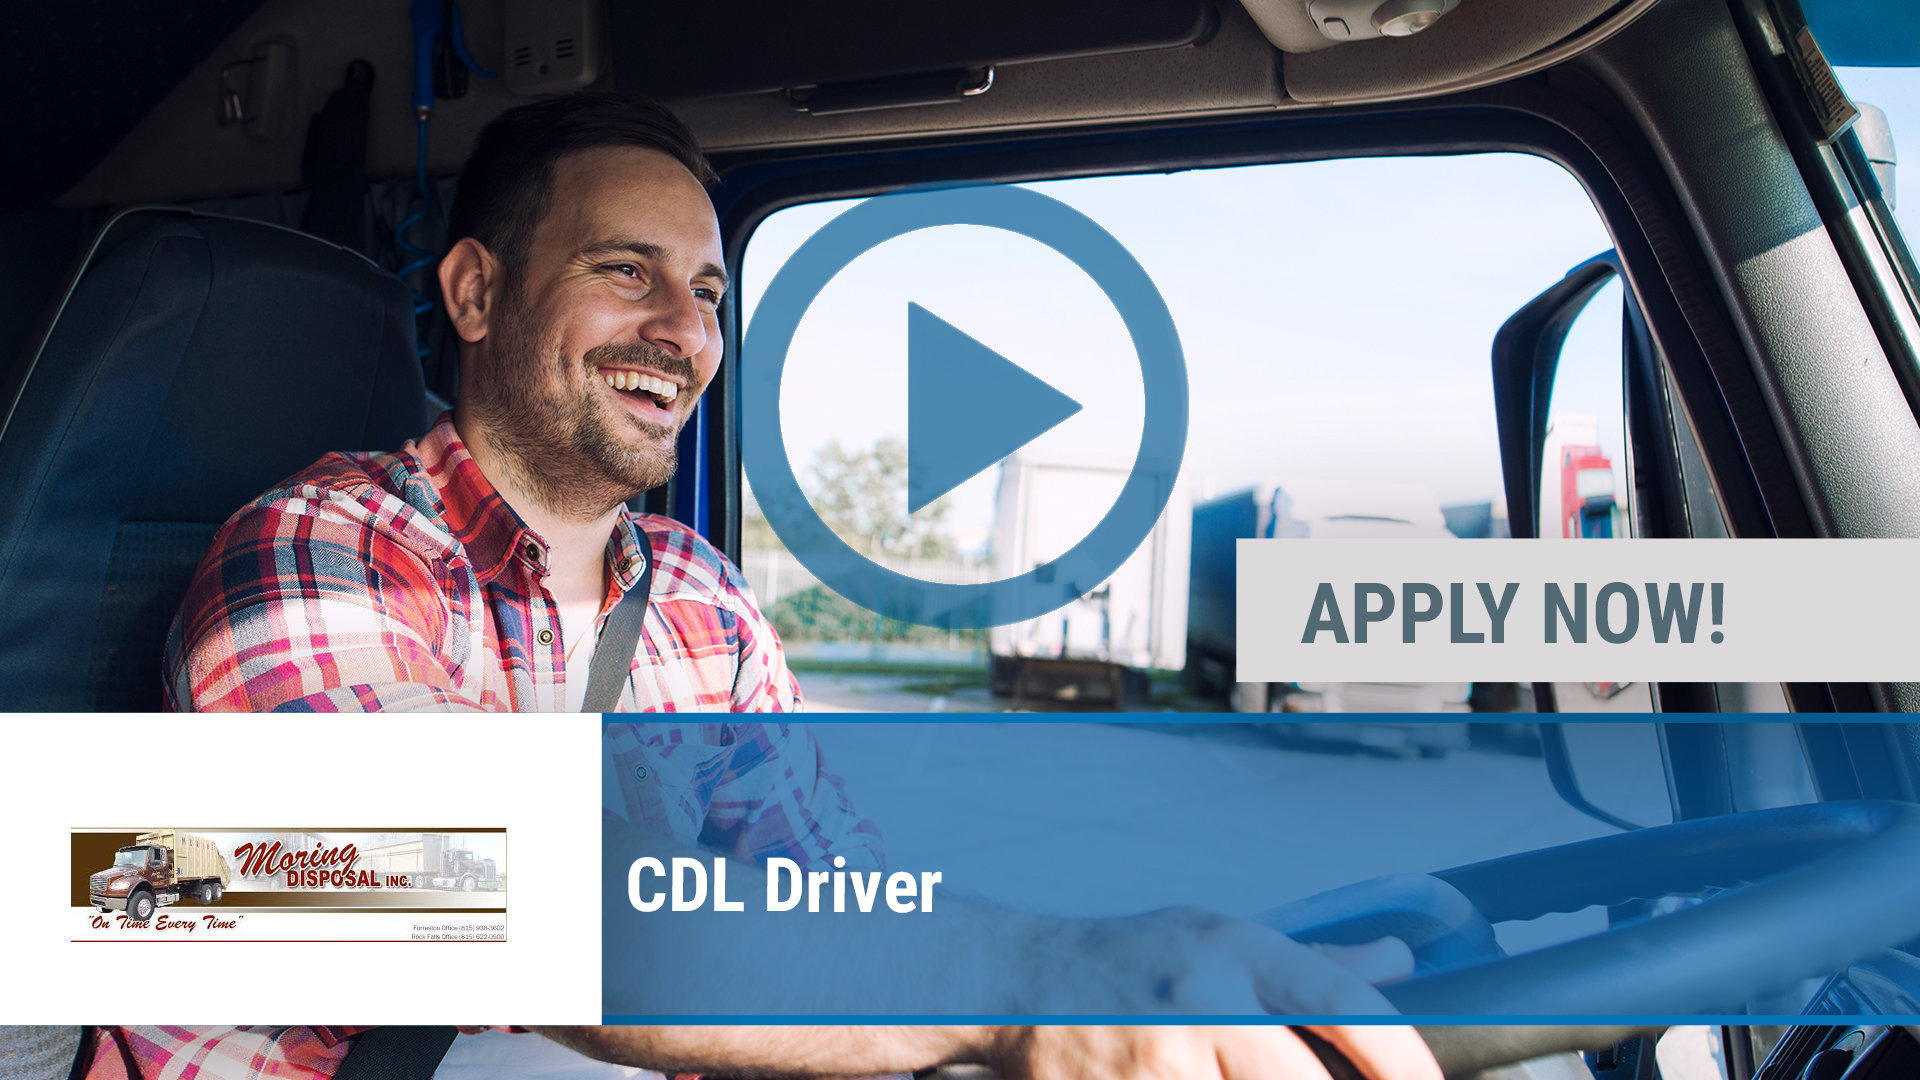 Watch our careers video for available job opening CDL Driver in Forreston, IL